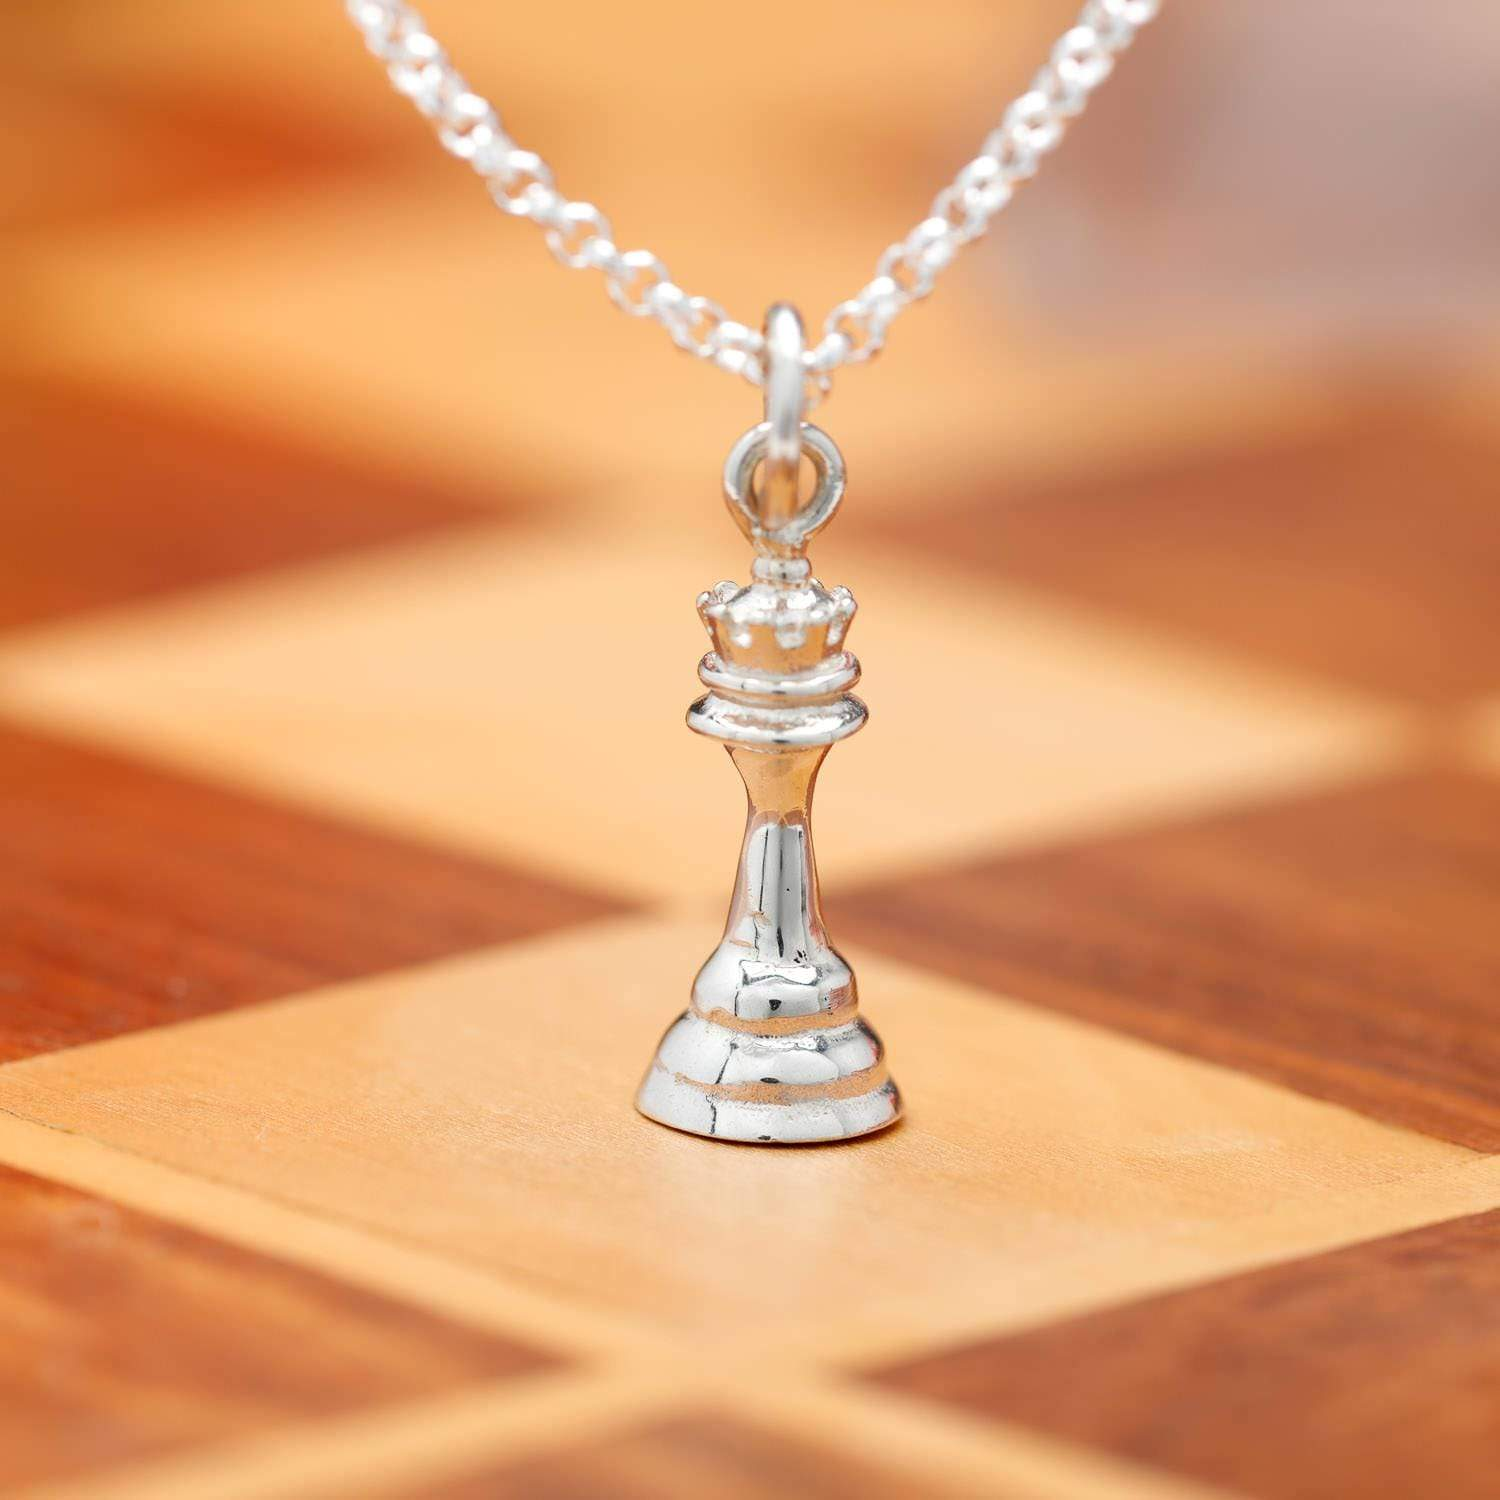 Personalised Silver Chess Piece Necklace - Lily Charmed